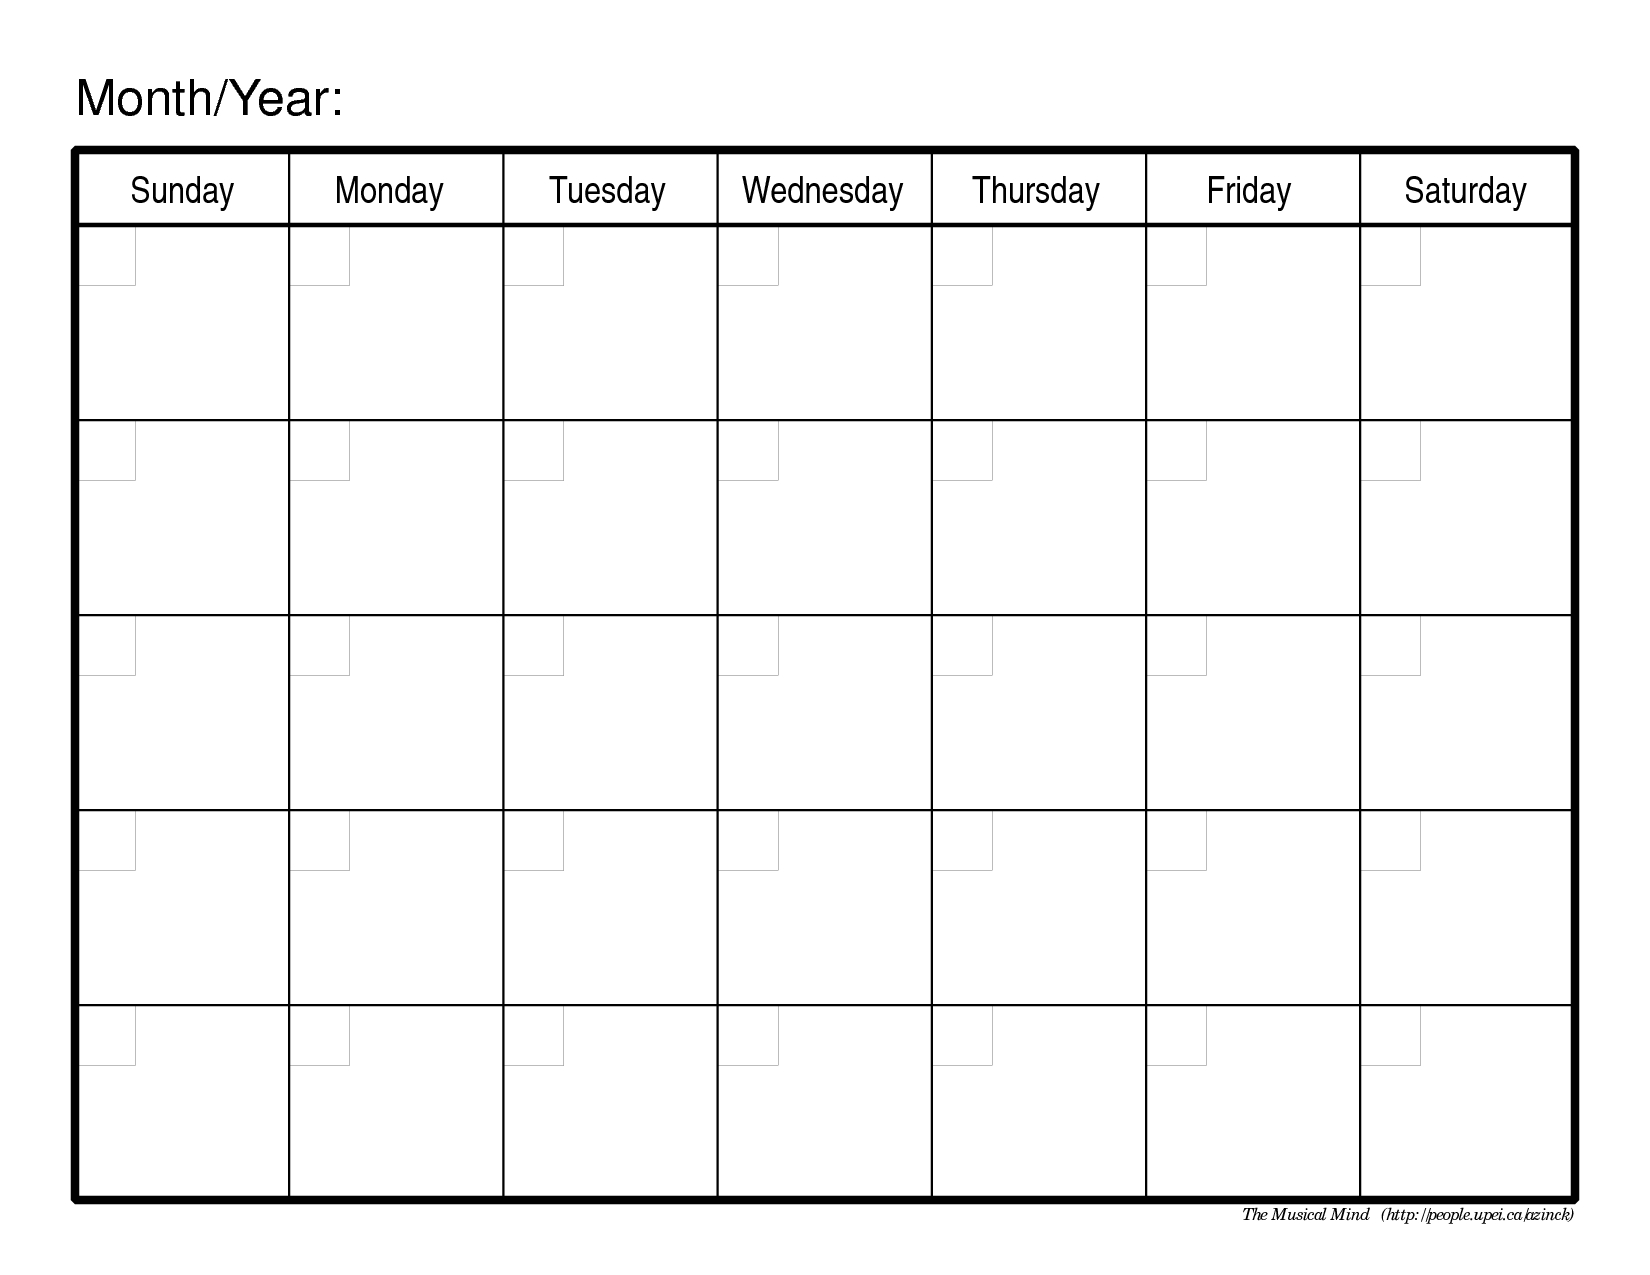 Monthly Calendar Template | Organizing | Monthly Calendar Template intended for Blank Calendar To Fill In